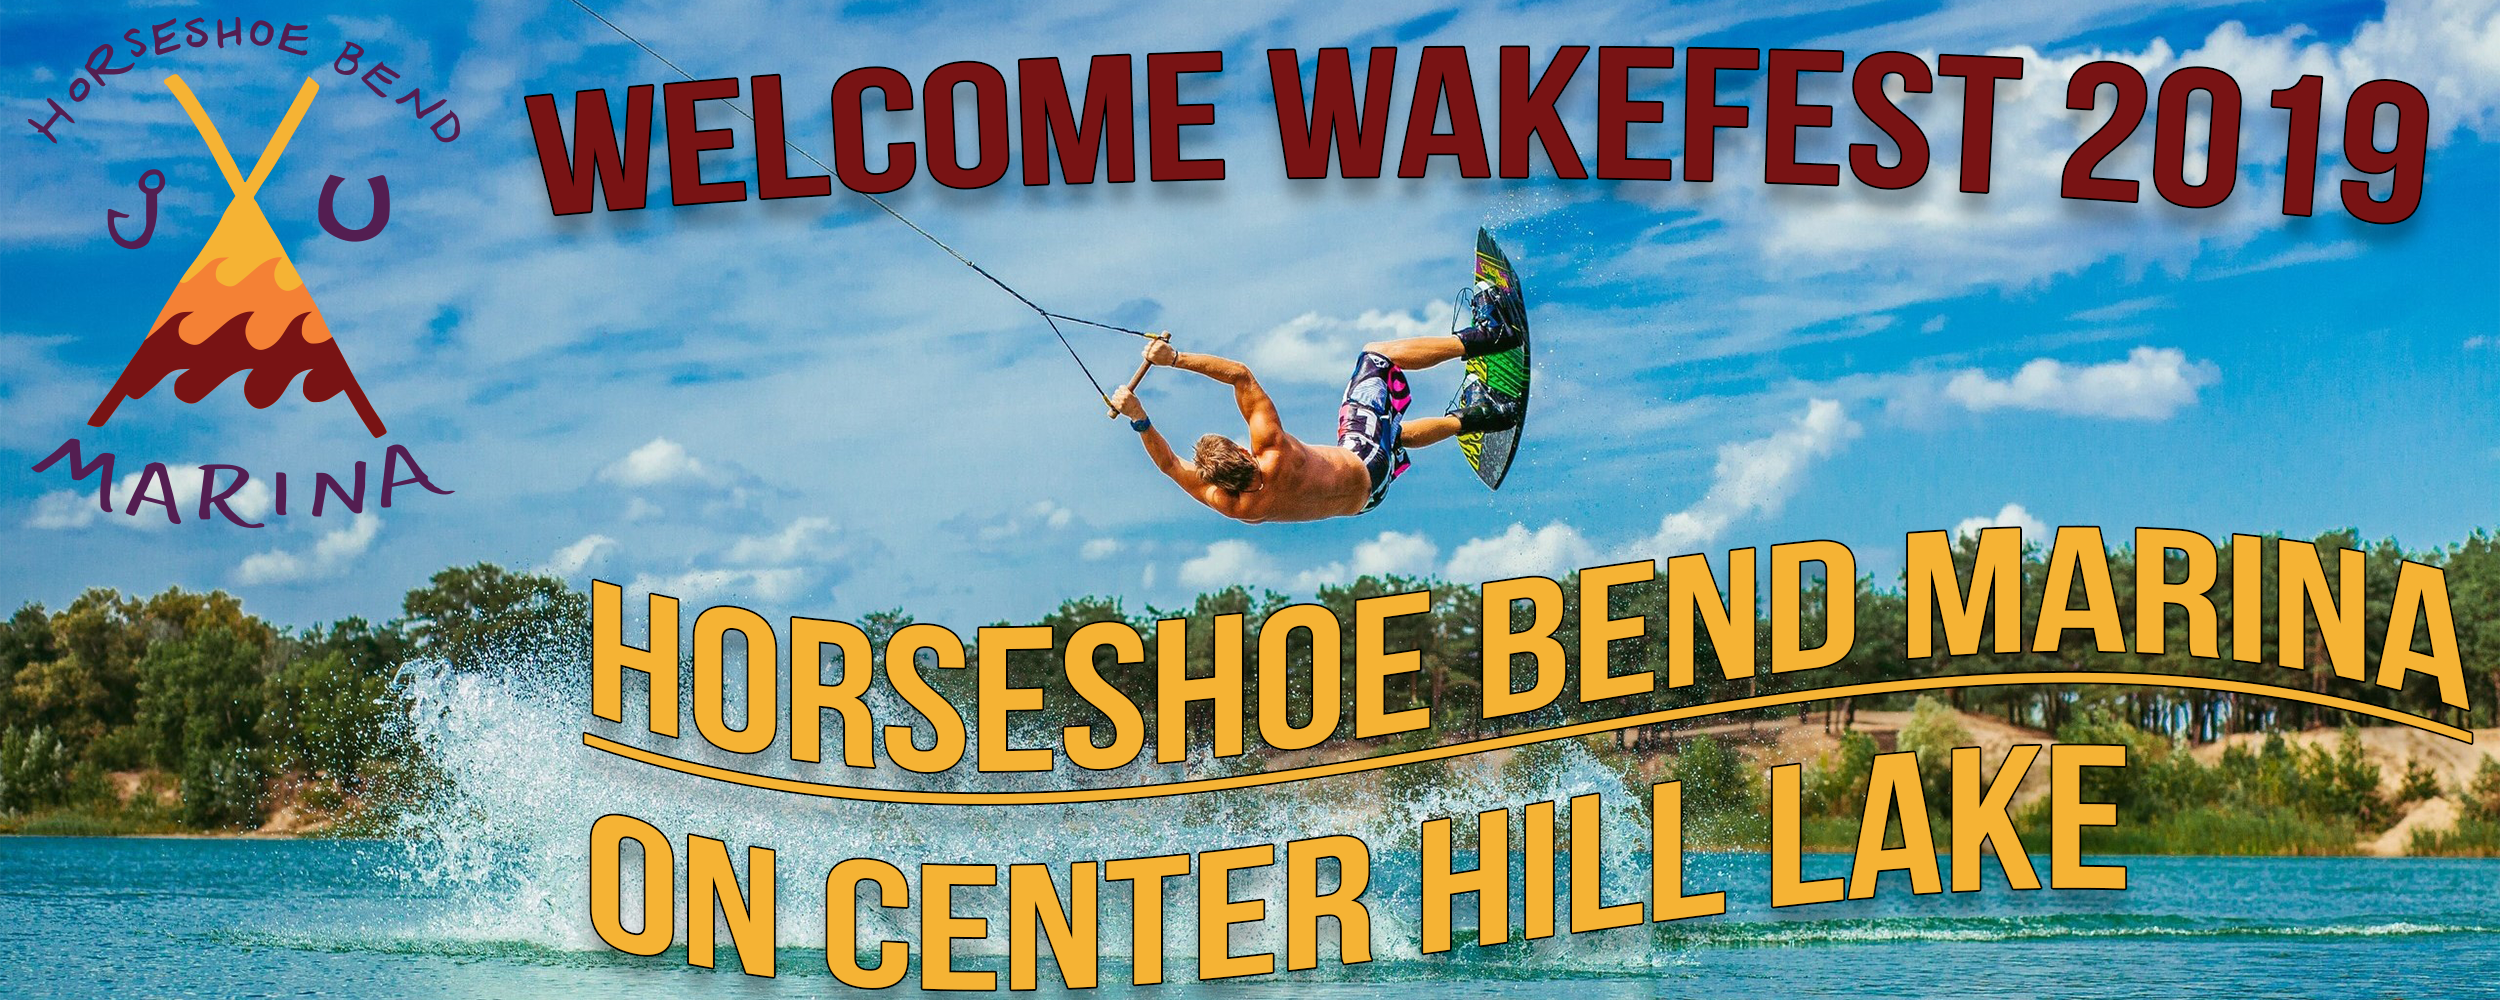 Wakefest 2019.png